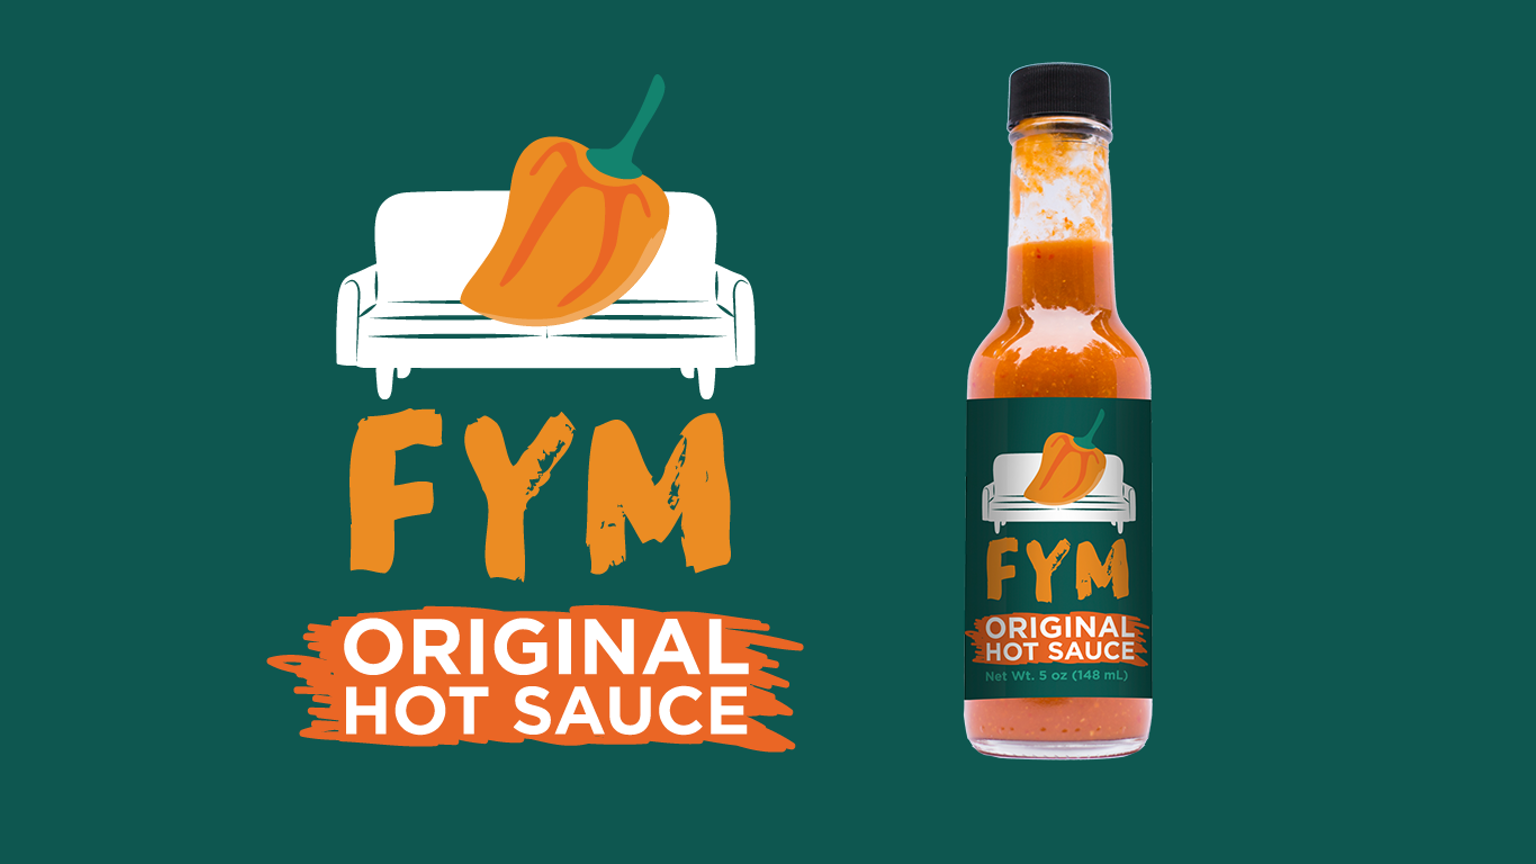 TNL eSports Brand Tracker 046: FYM (Photo: FYM Hot Sauce)